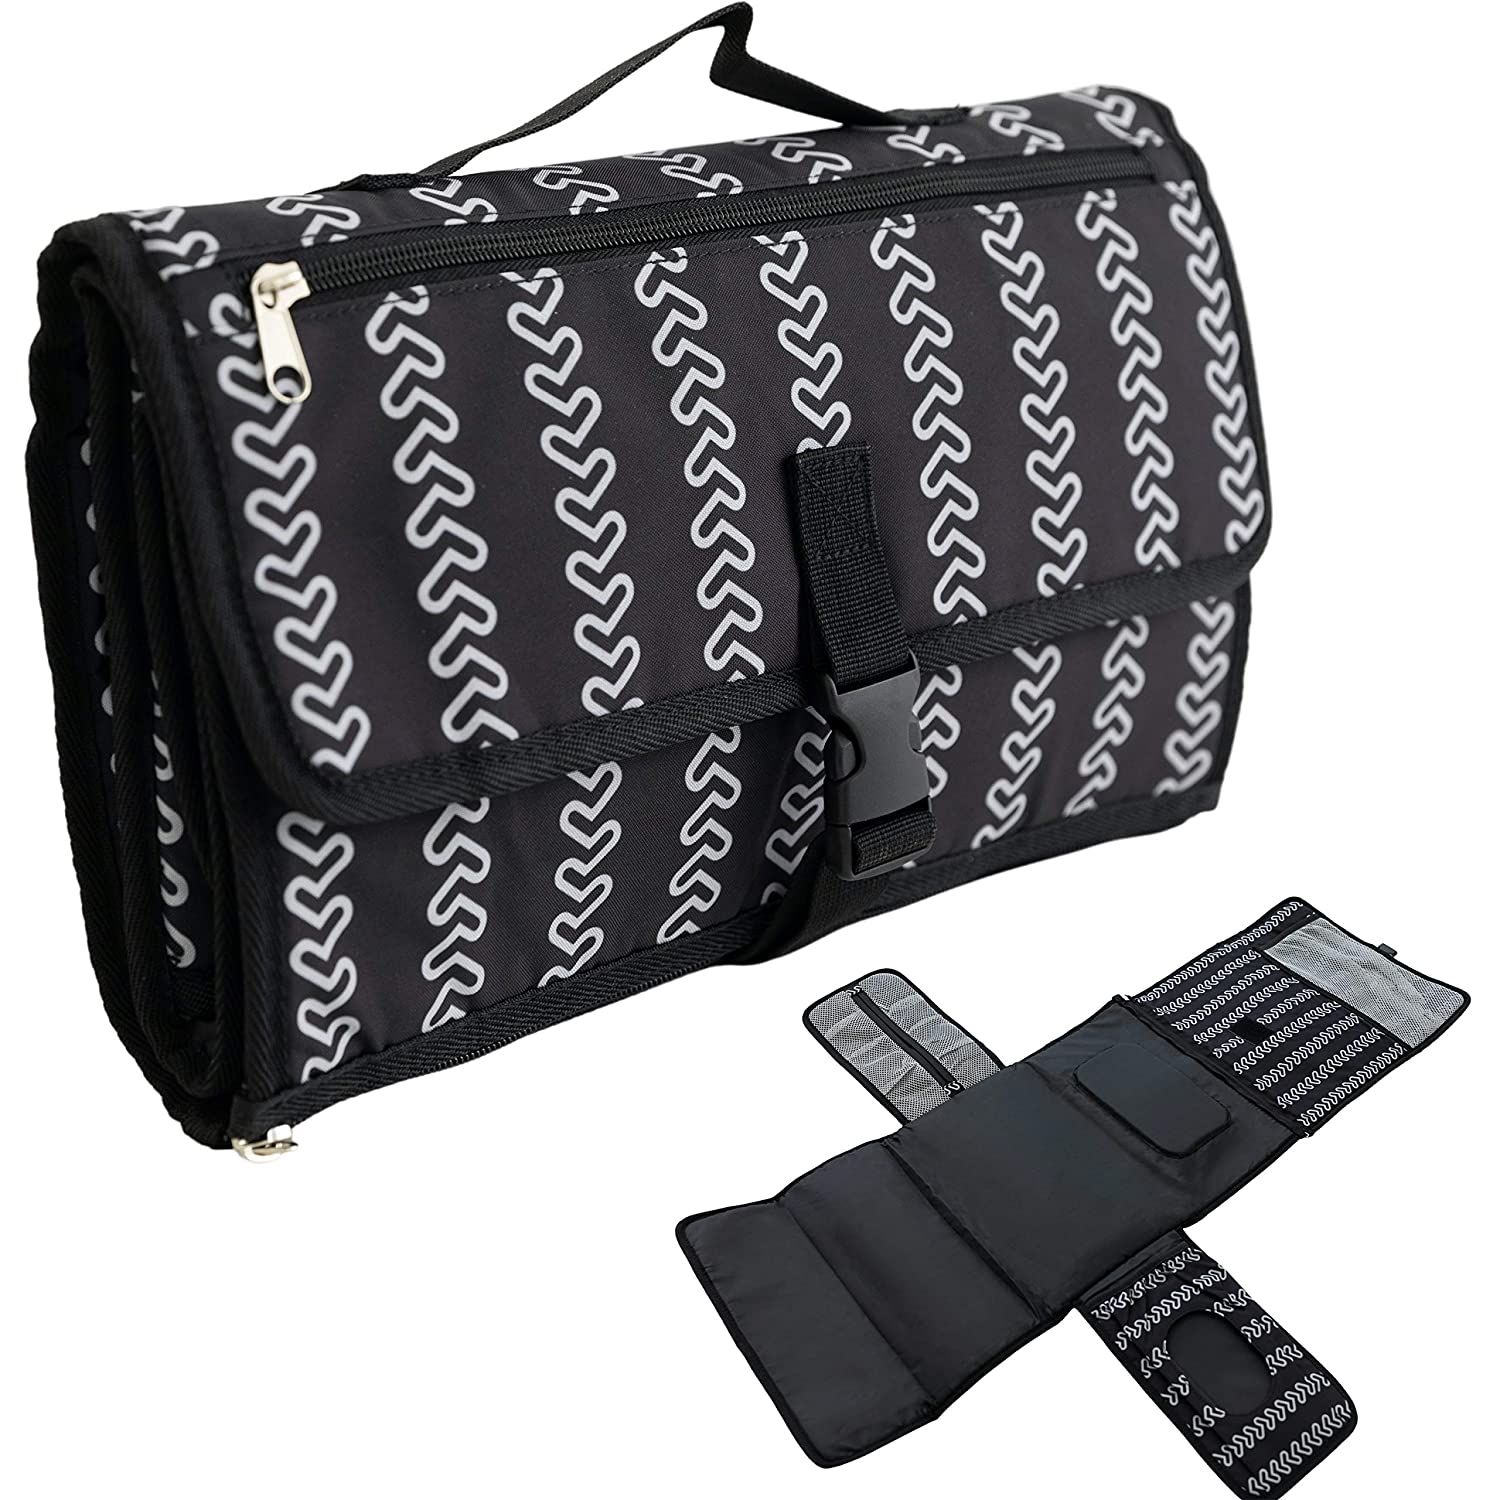 Luxury Little Portable Baby Diaper Changing Pad - 2 Extra Pockets for Diapers, Wipes, Creams, and More - Extra Large Waterproof Travel Mat with Memory Foam Head Pillow - Detachable, Black